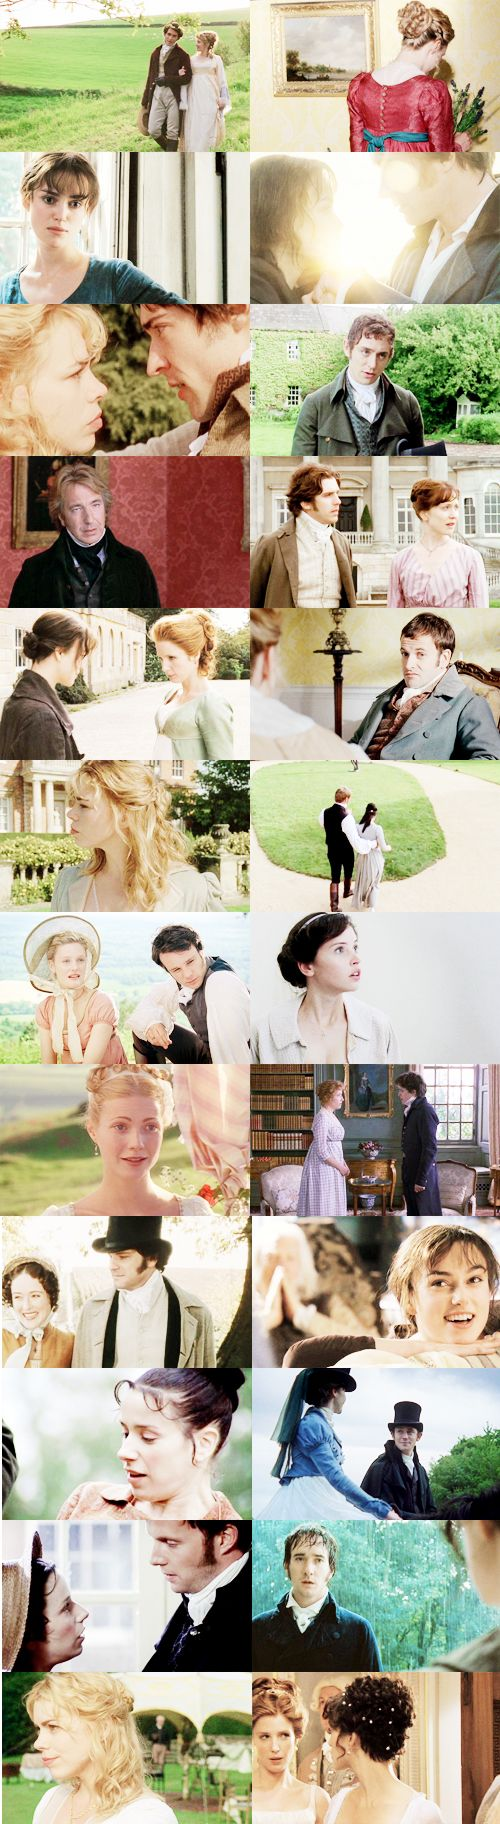 Love me some Jane Austen movies :)